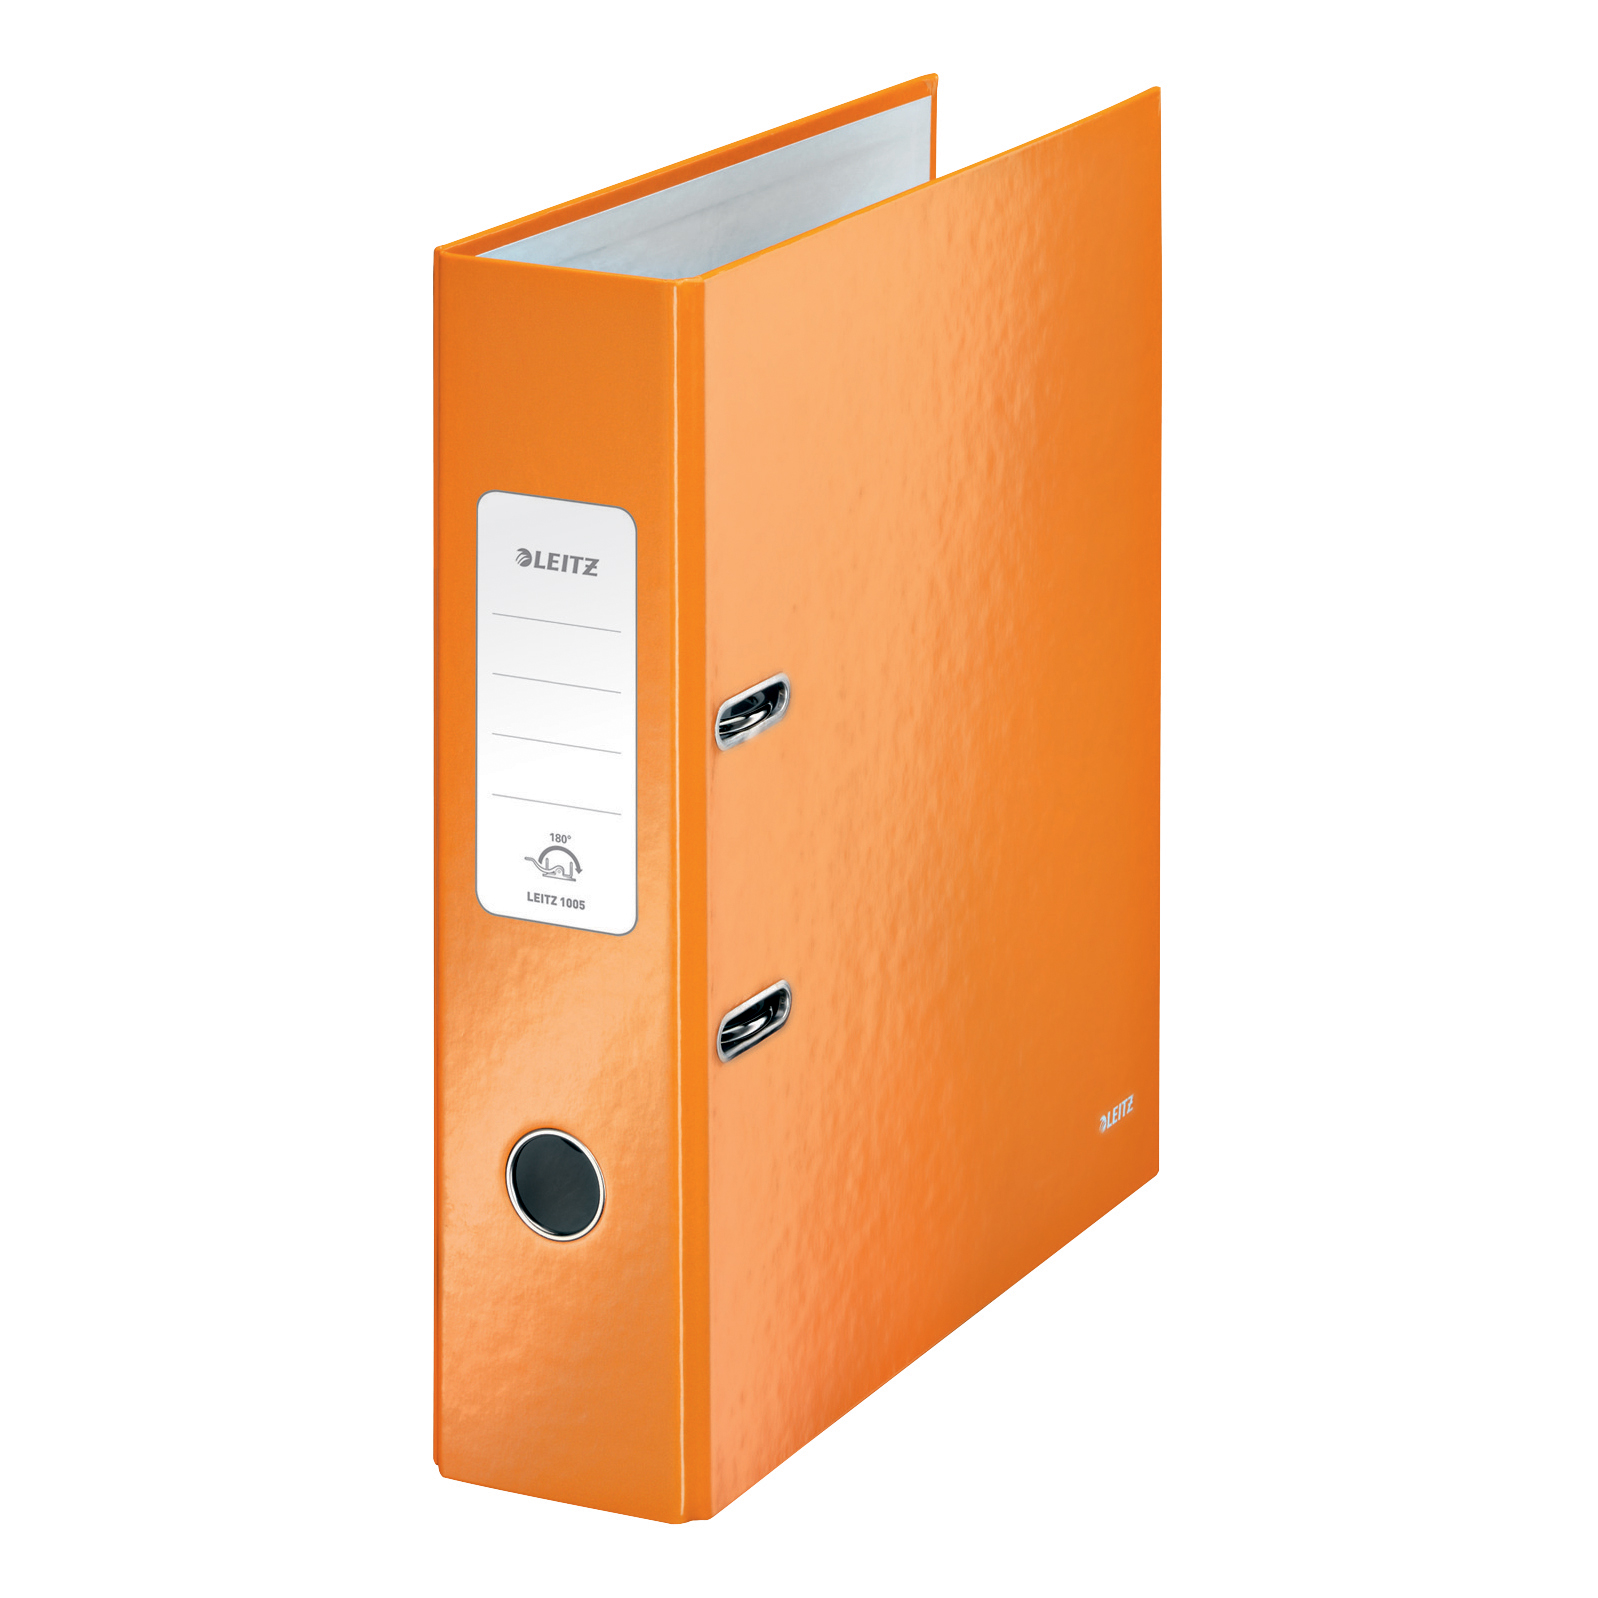 Leitz WOW Lever Arch File 80mm Spine for 600 Sheets A4 Orange Ref 10050044 Pack 10 REDEMPTION